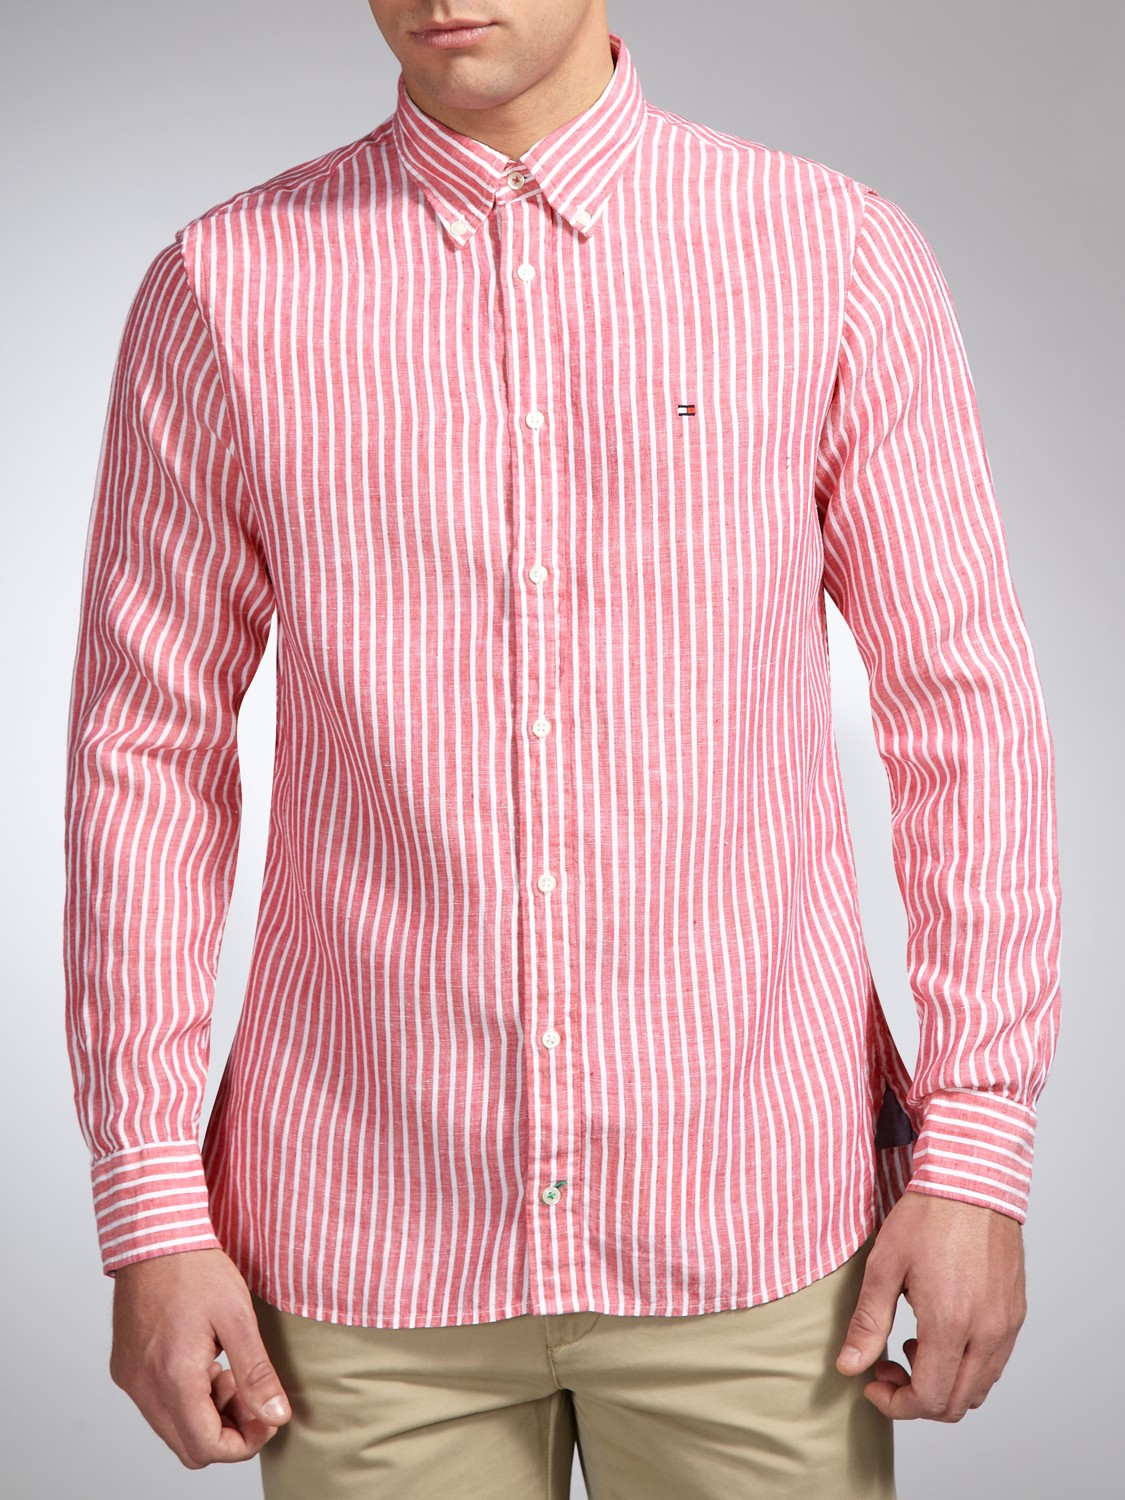 c9a1a9e01 Tommy Hilfiger Long Sleeve Stripe Linen Shirt in Red for Men - Lyst